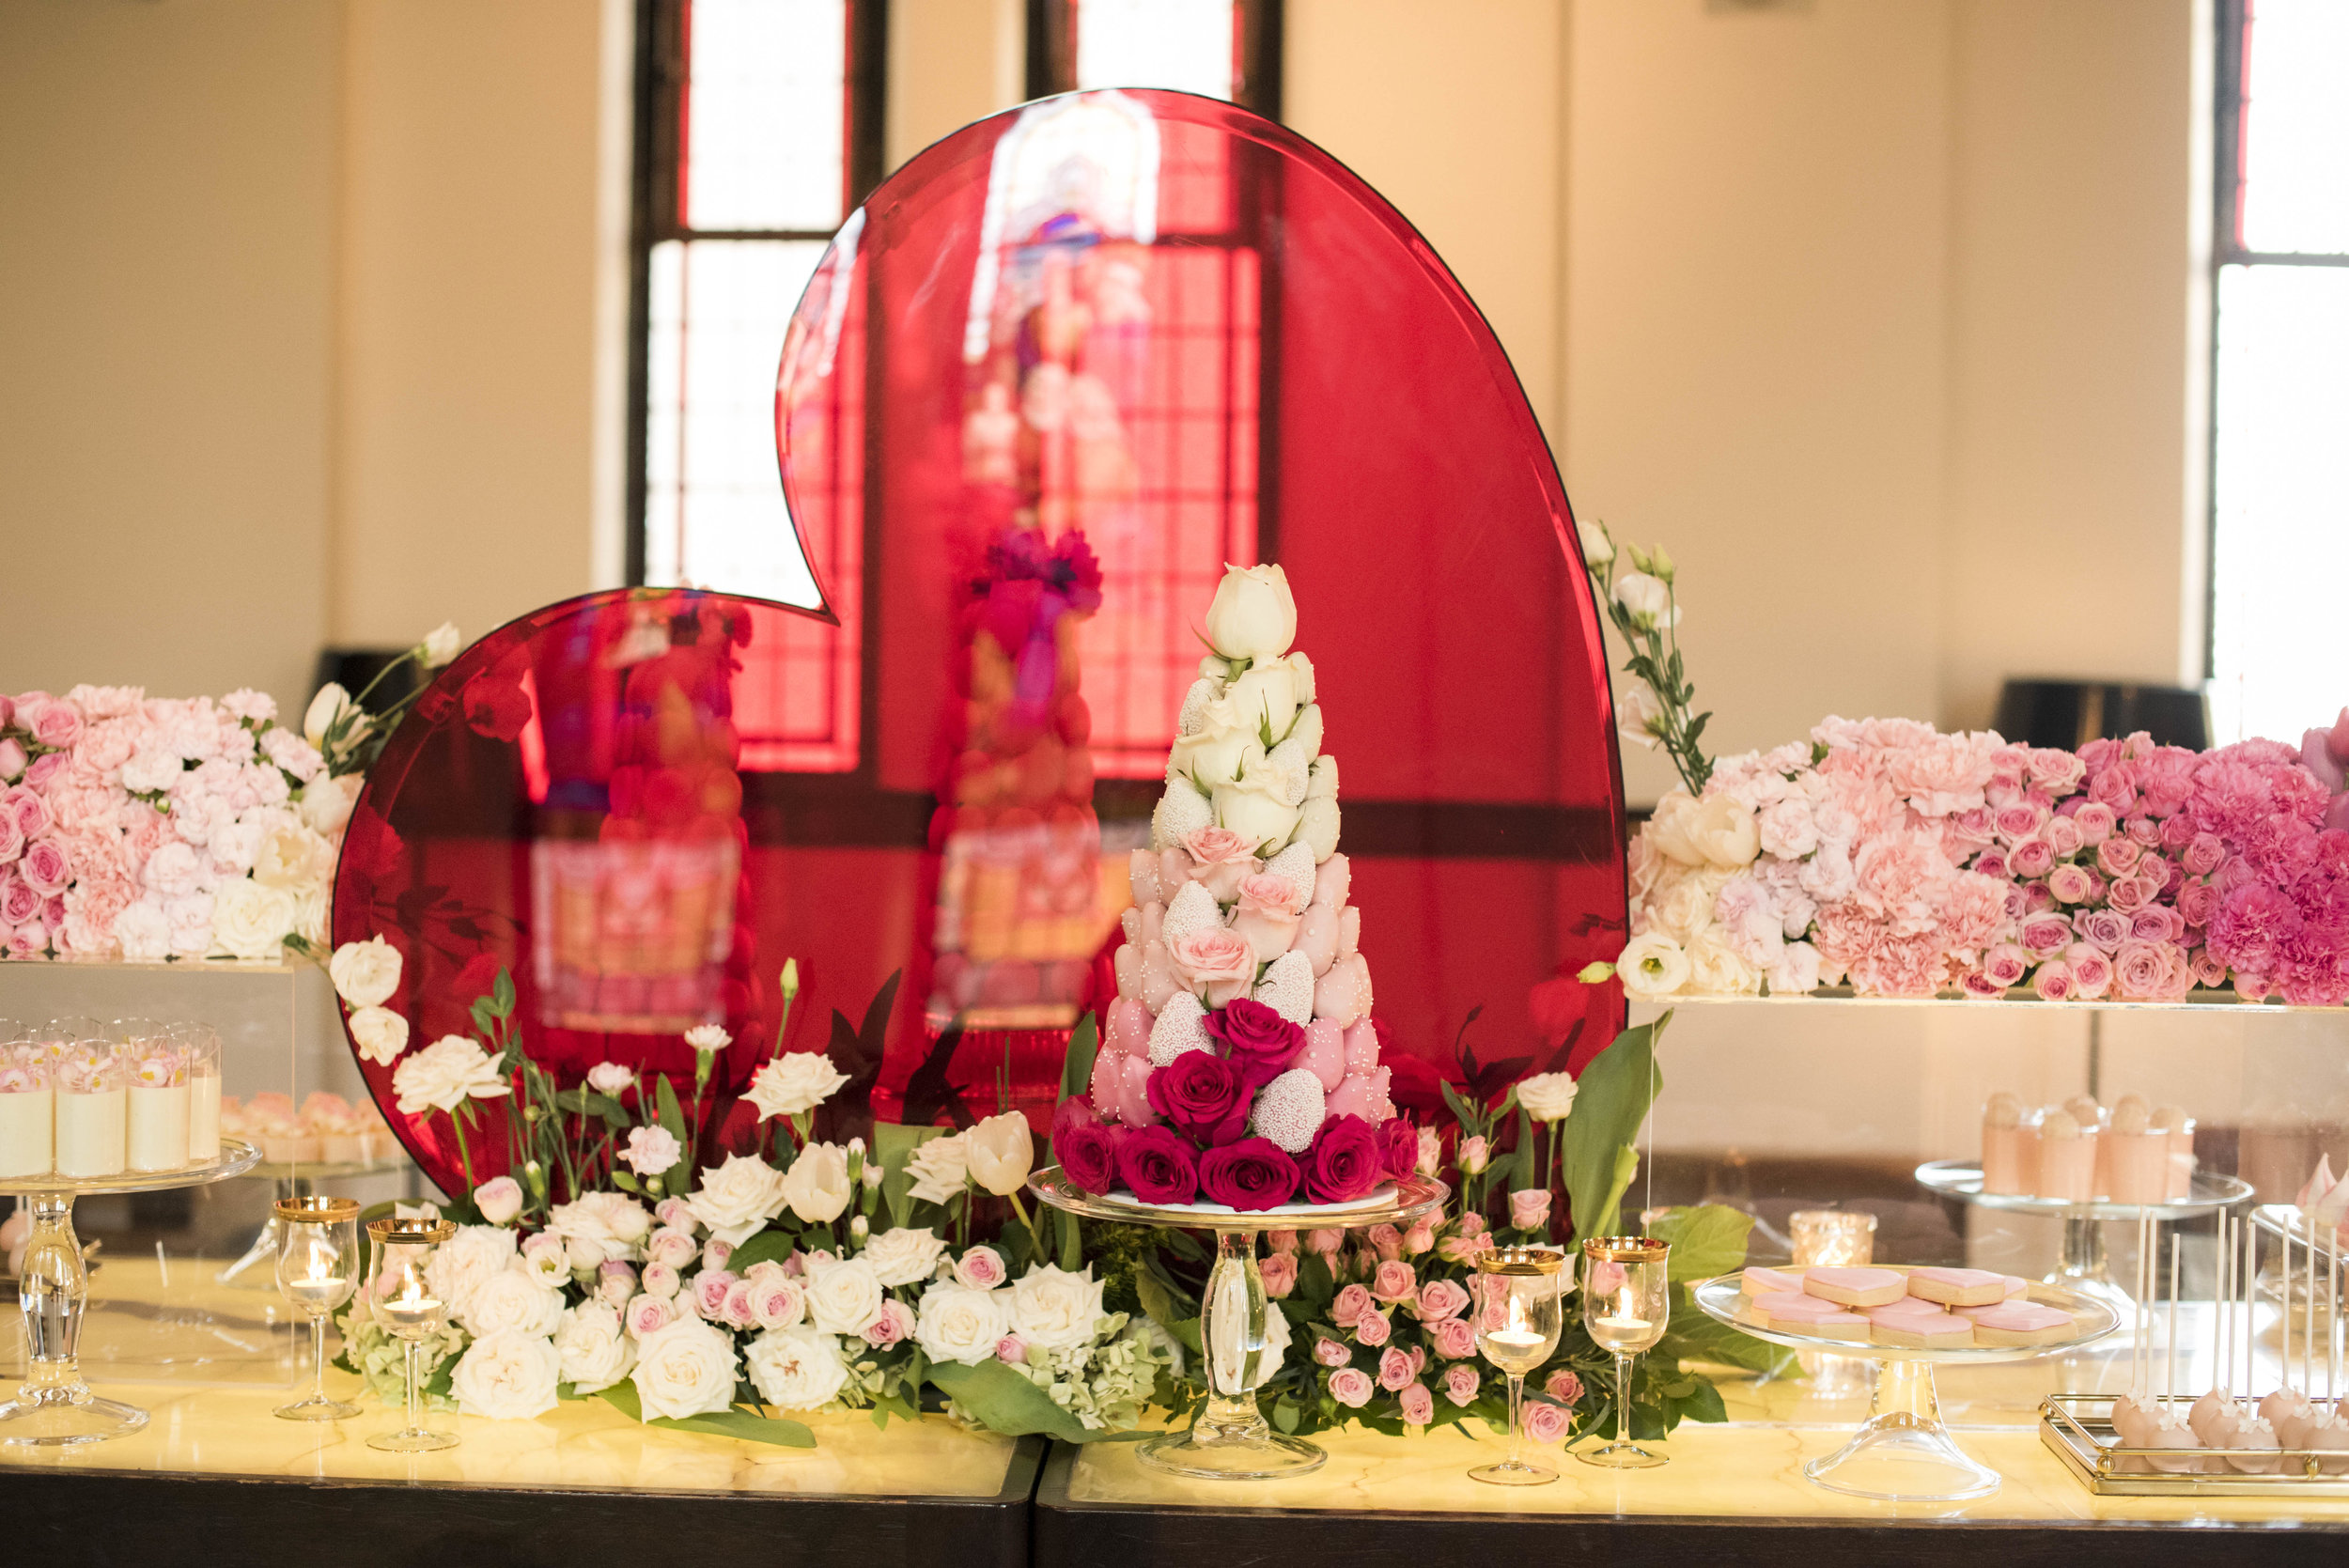 dessert_table_design_styling_red_pink_heart_centrepiece.jpg